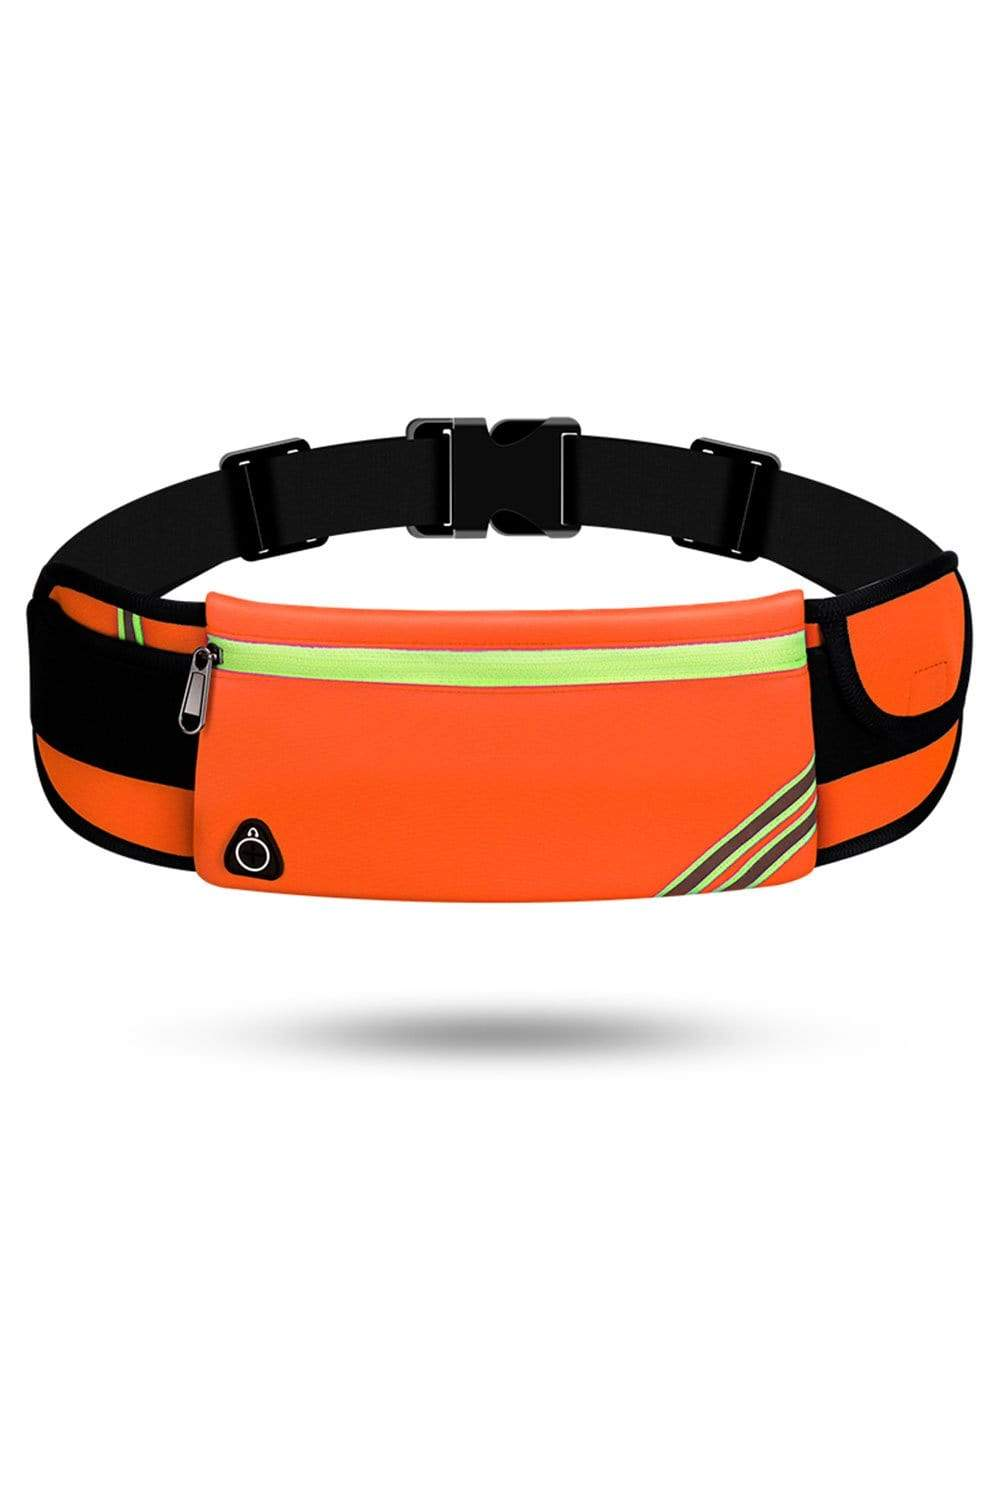 Running Waist Pack Bag, Workout Fanny Pack, Bounce Free Jogging Pocket Belt, Travelling Money Cell Phone Holder for Running Accessories Waist Bag Orange / Single Zipper MIER